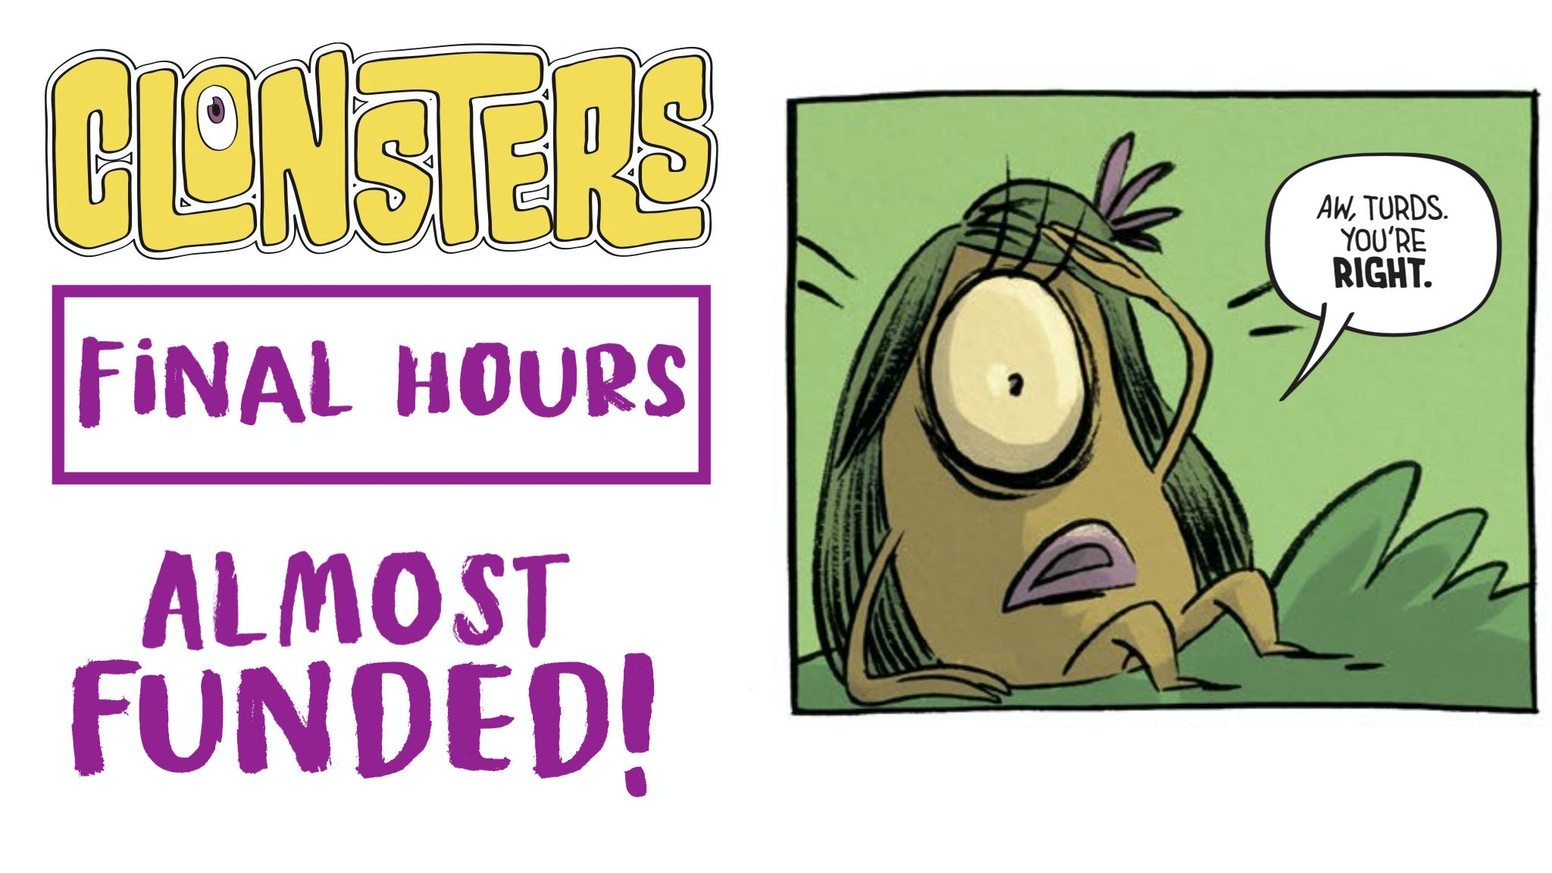 AAAHH! REAL MONSTERS meets ADVENTURE TIME! CLONSTERS VOLUME 1 is also available for the full 2 book saga of hilarity!